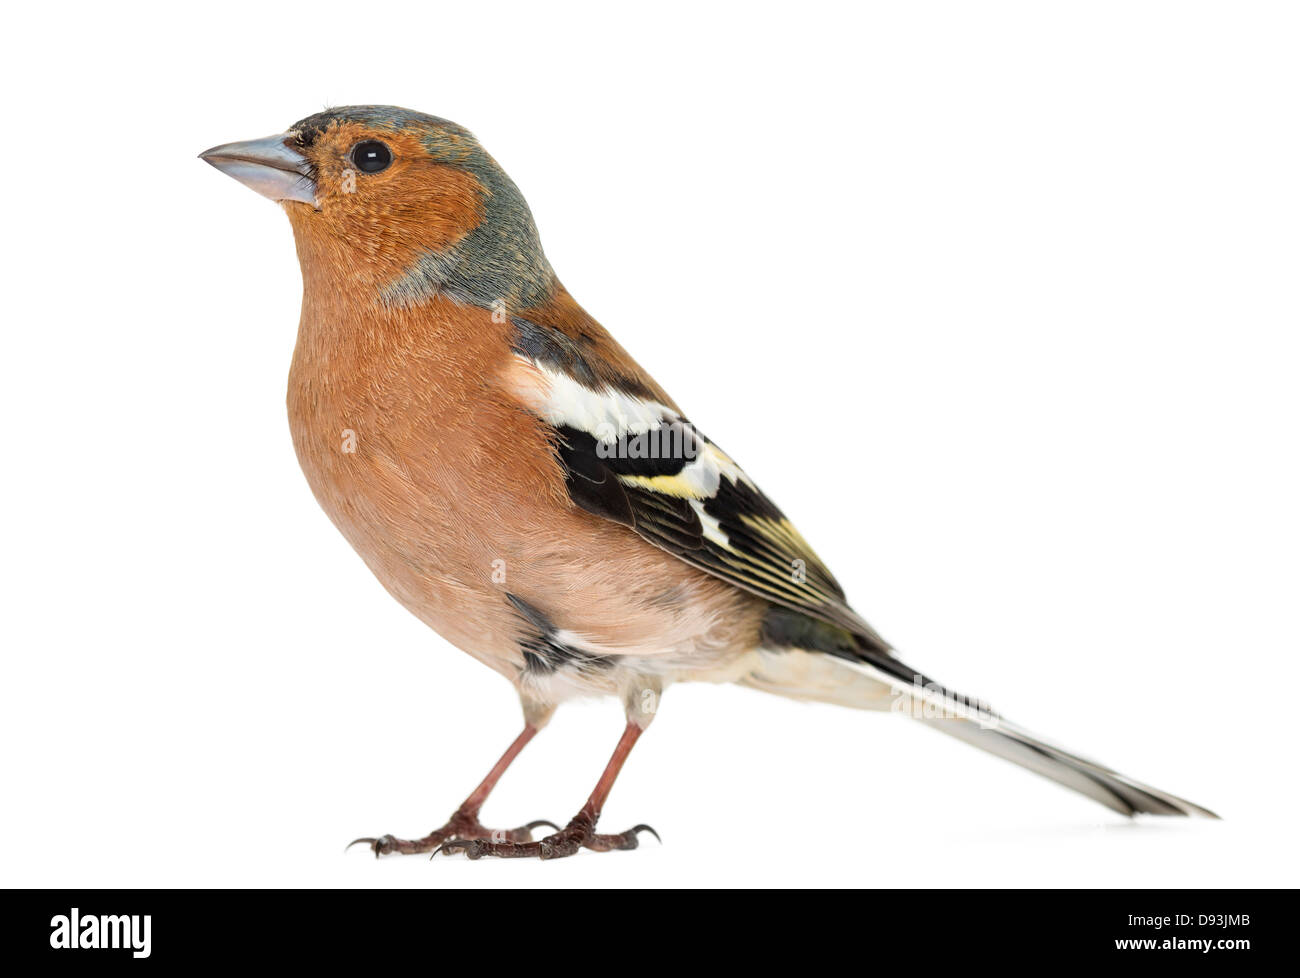 Common Chaffinch, Fringilla coelebs, against white background - Stock Image